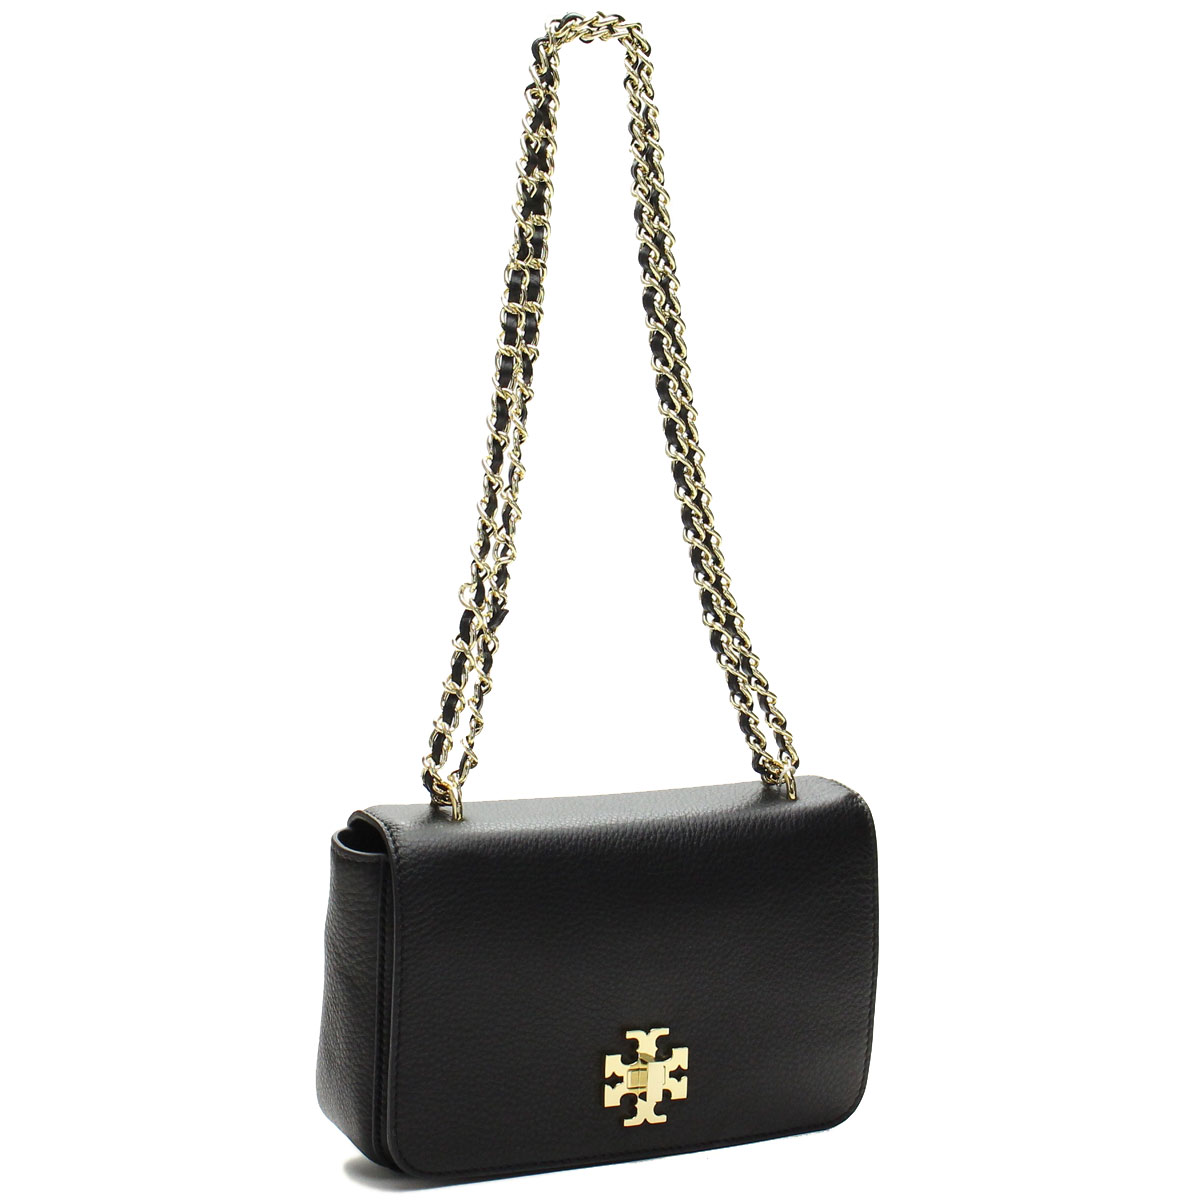 47493b574 Bighit The total brand wholesale  Tory Burch (TORY BURCH) MERCER ADJUSTABLE shoulder  bag 51149600-001 BLACK black( taxfree send by EMS authentic A brand new ...